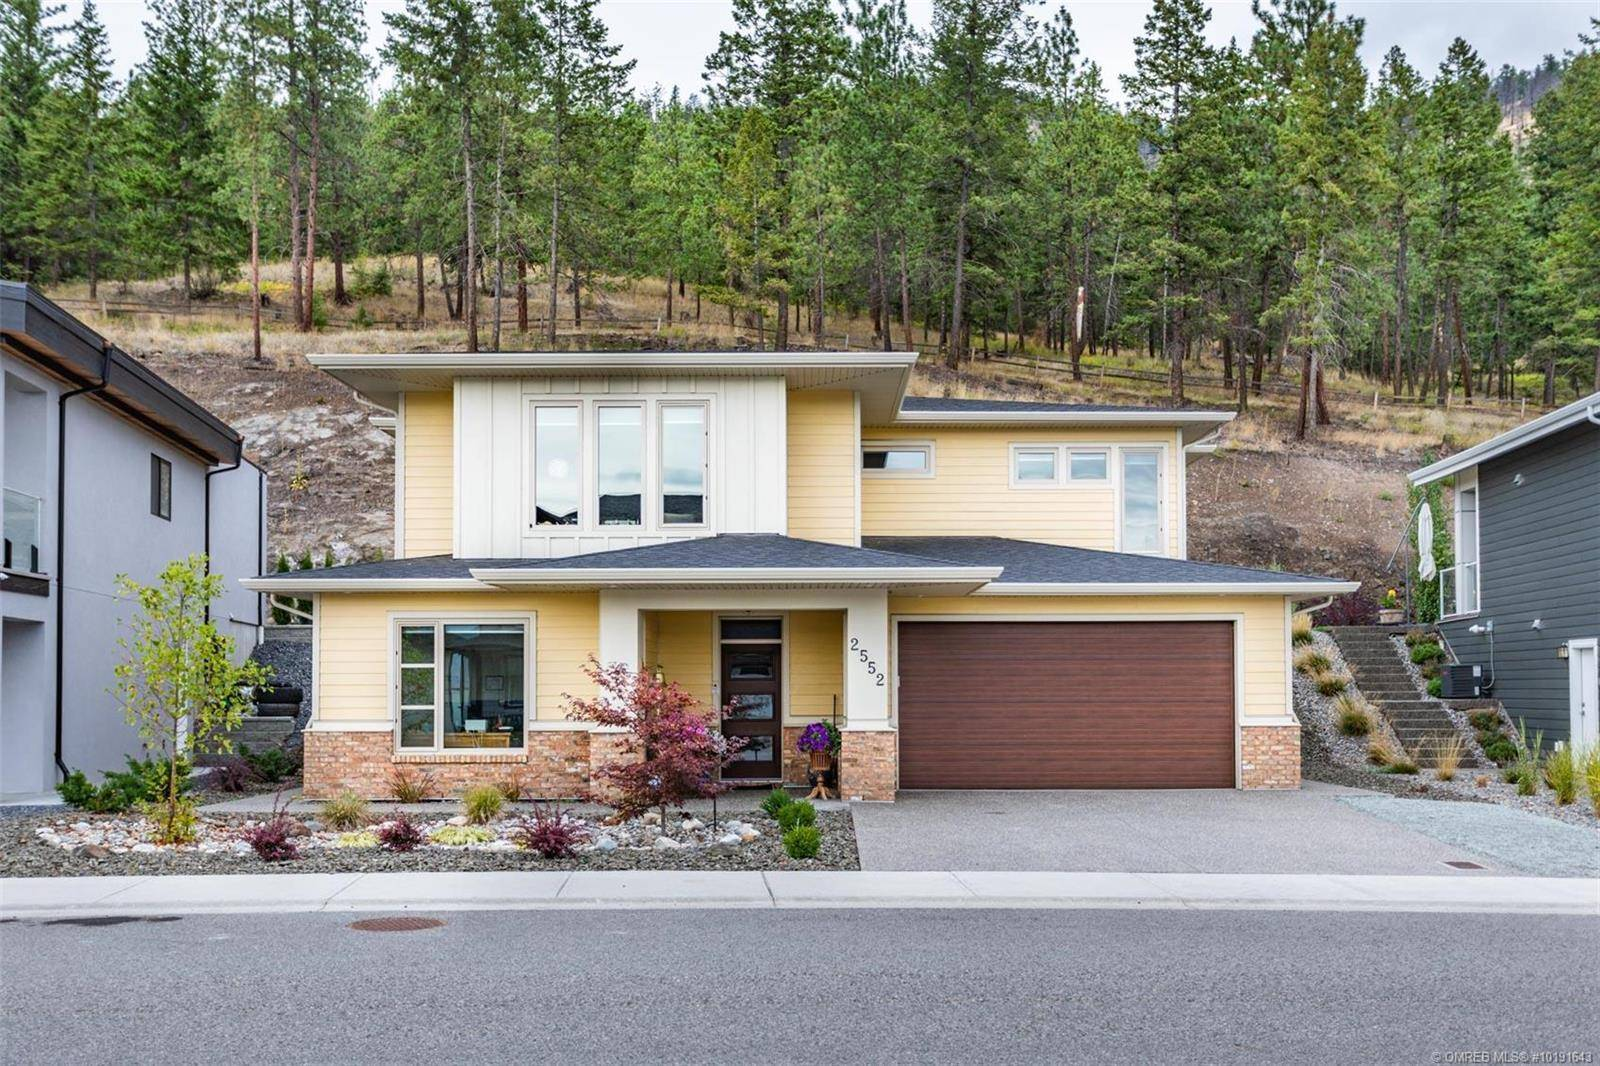 House for sale at 2552 Crown Crest Dr West Kelowna British Columbia - MLS: 10191643